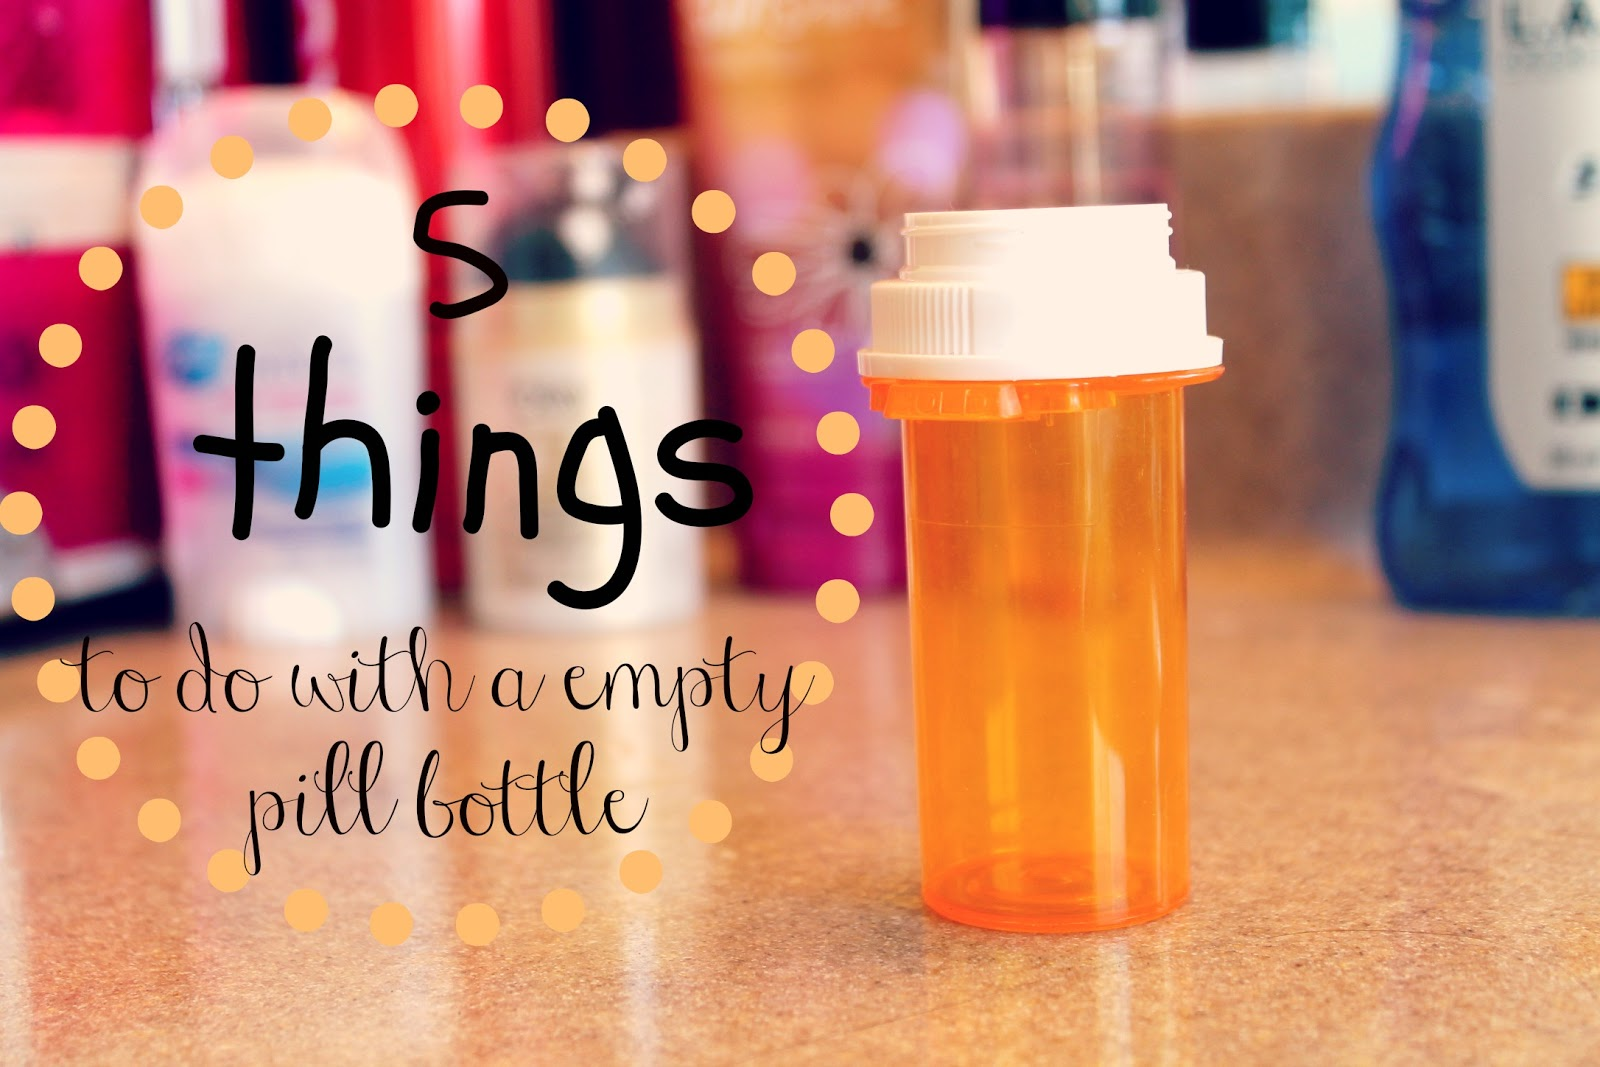 the beauty blog 5 things to do with a empty pill bottle